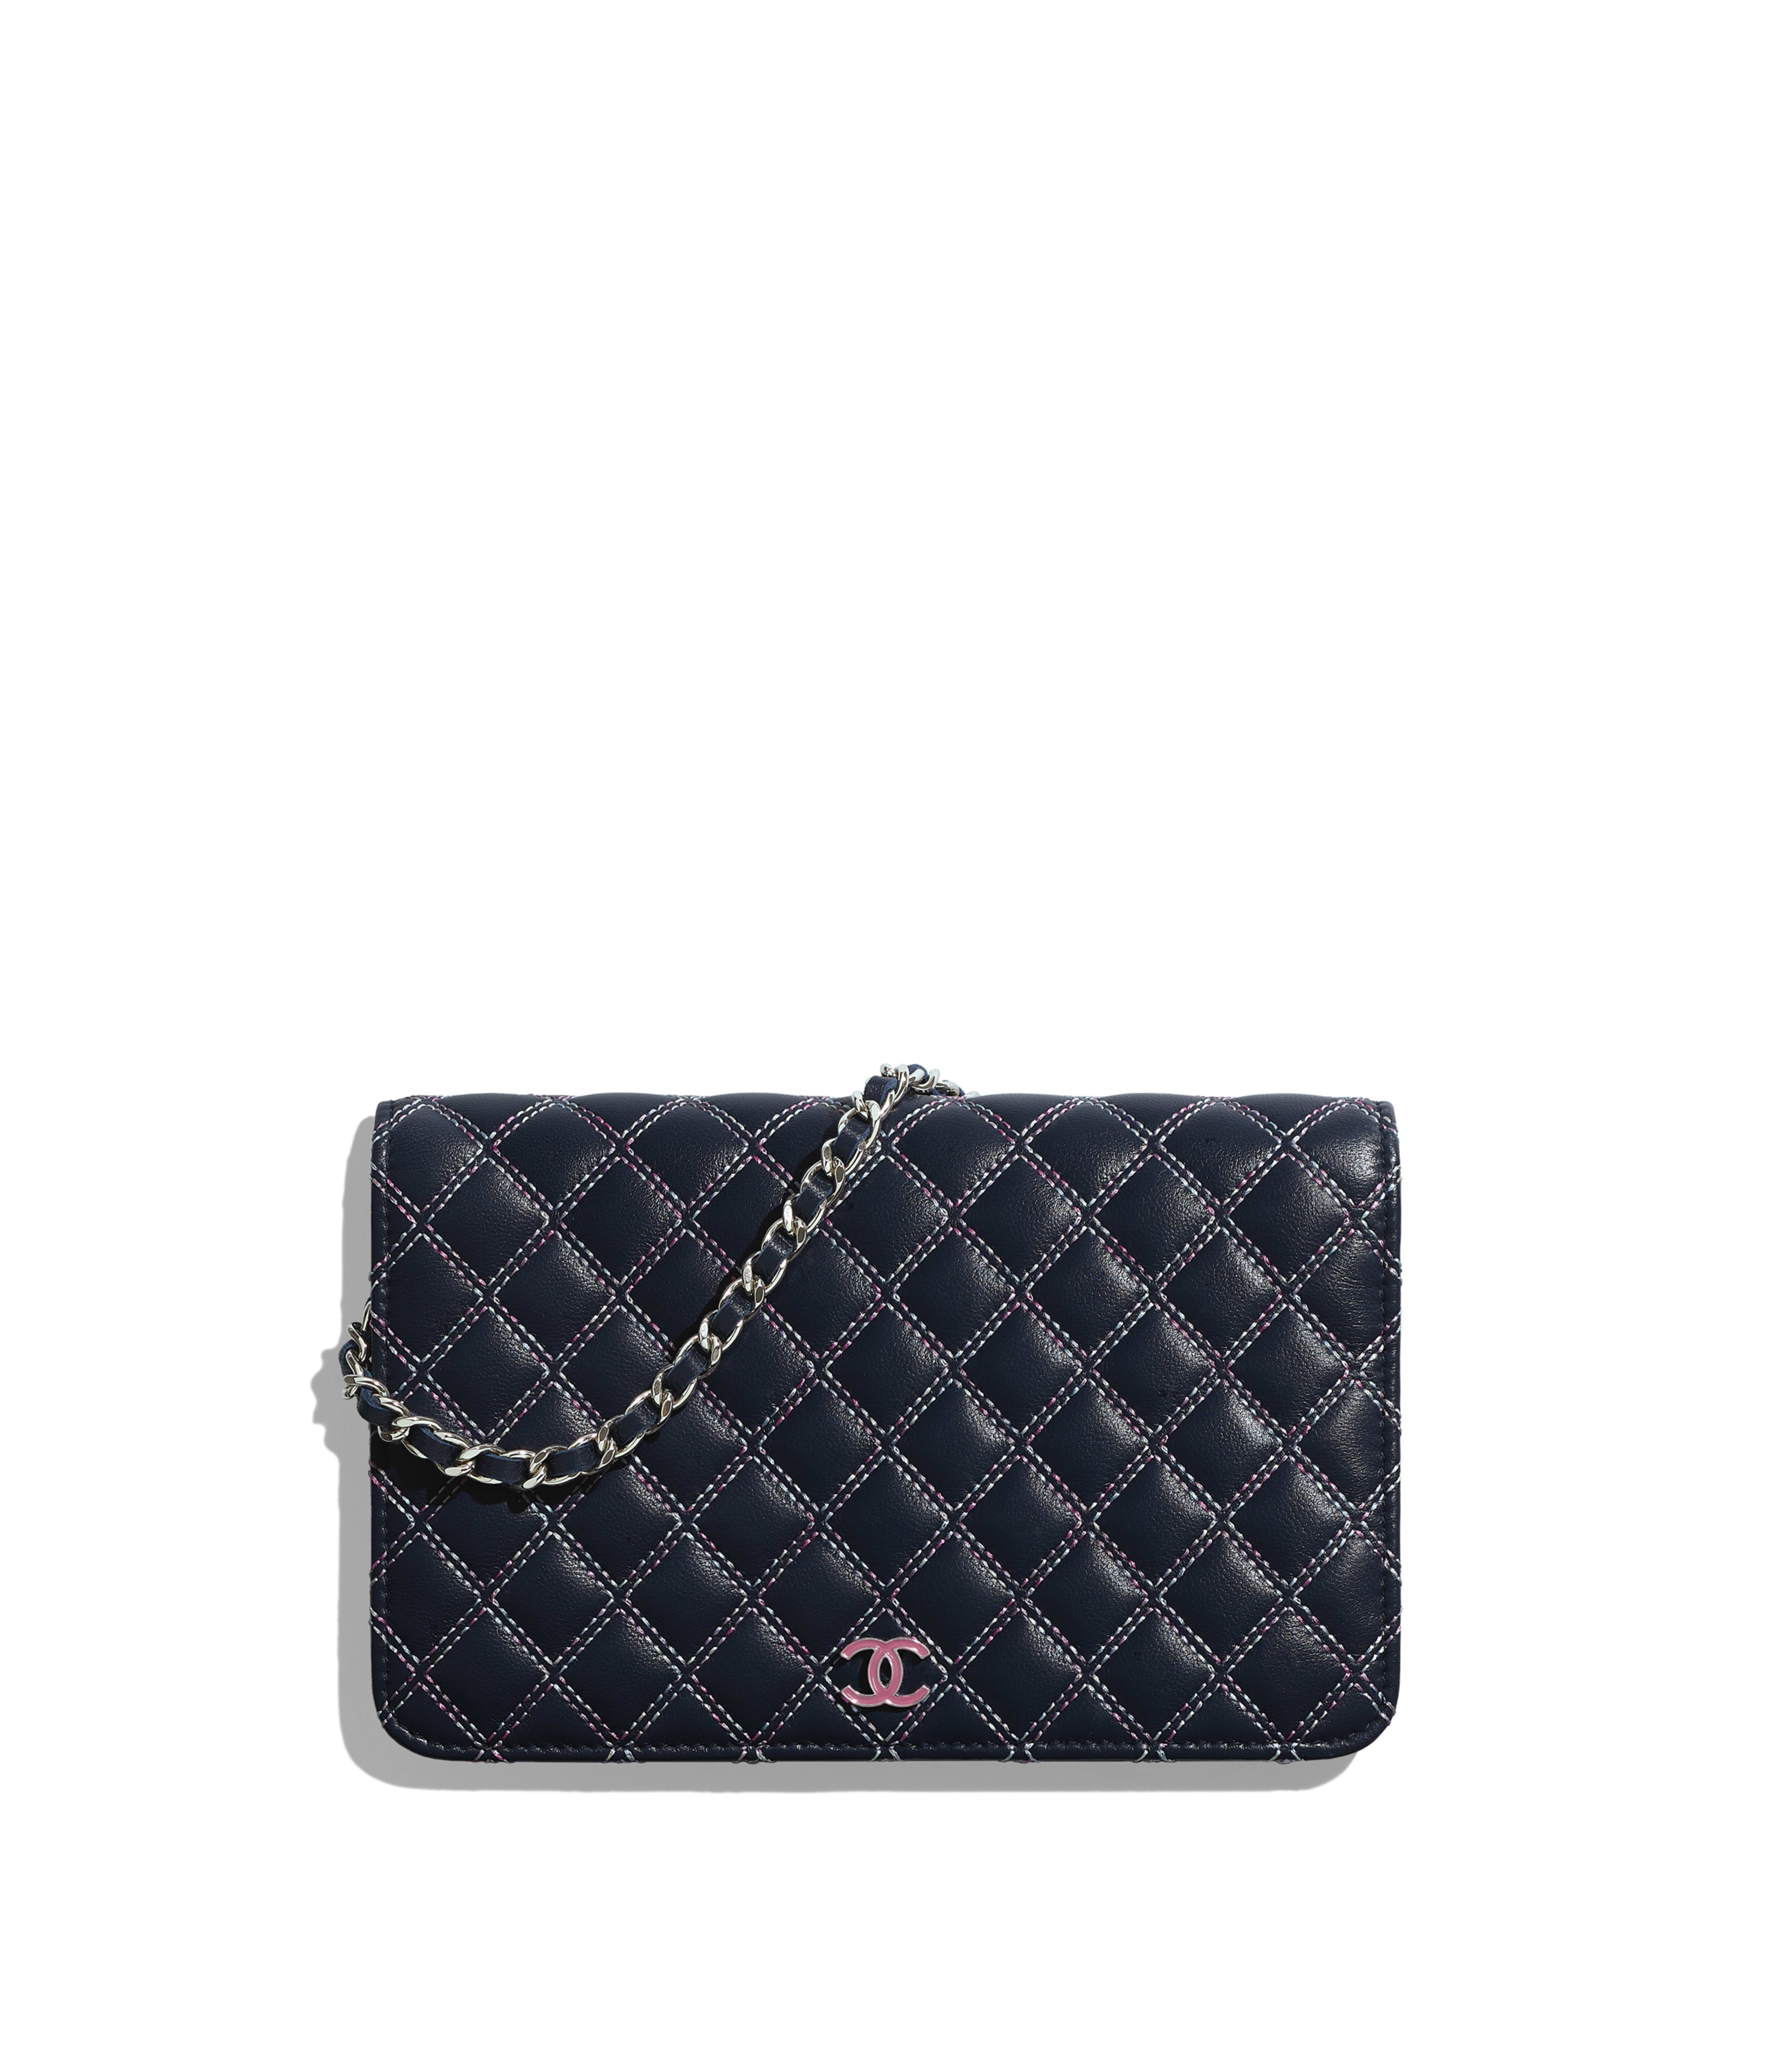 a8ec96a3601a Wallet on Chain Lambskin & Lacquered Silver-Tone Metal, Navy Blue & Pink  Ref. AP0184B00101N0470